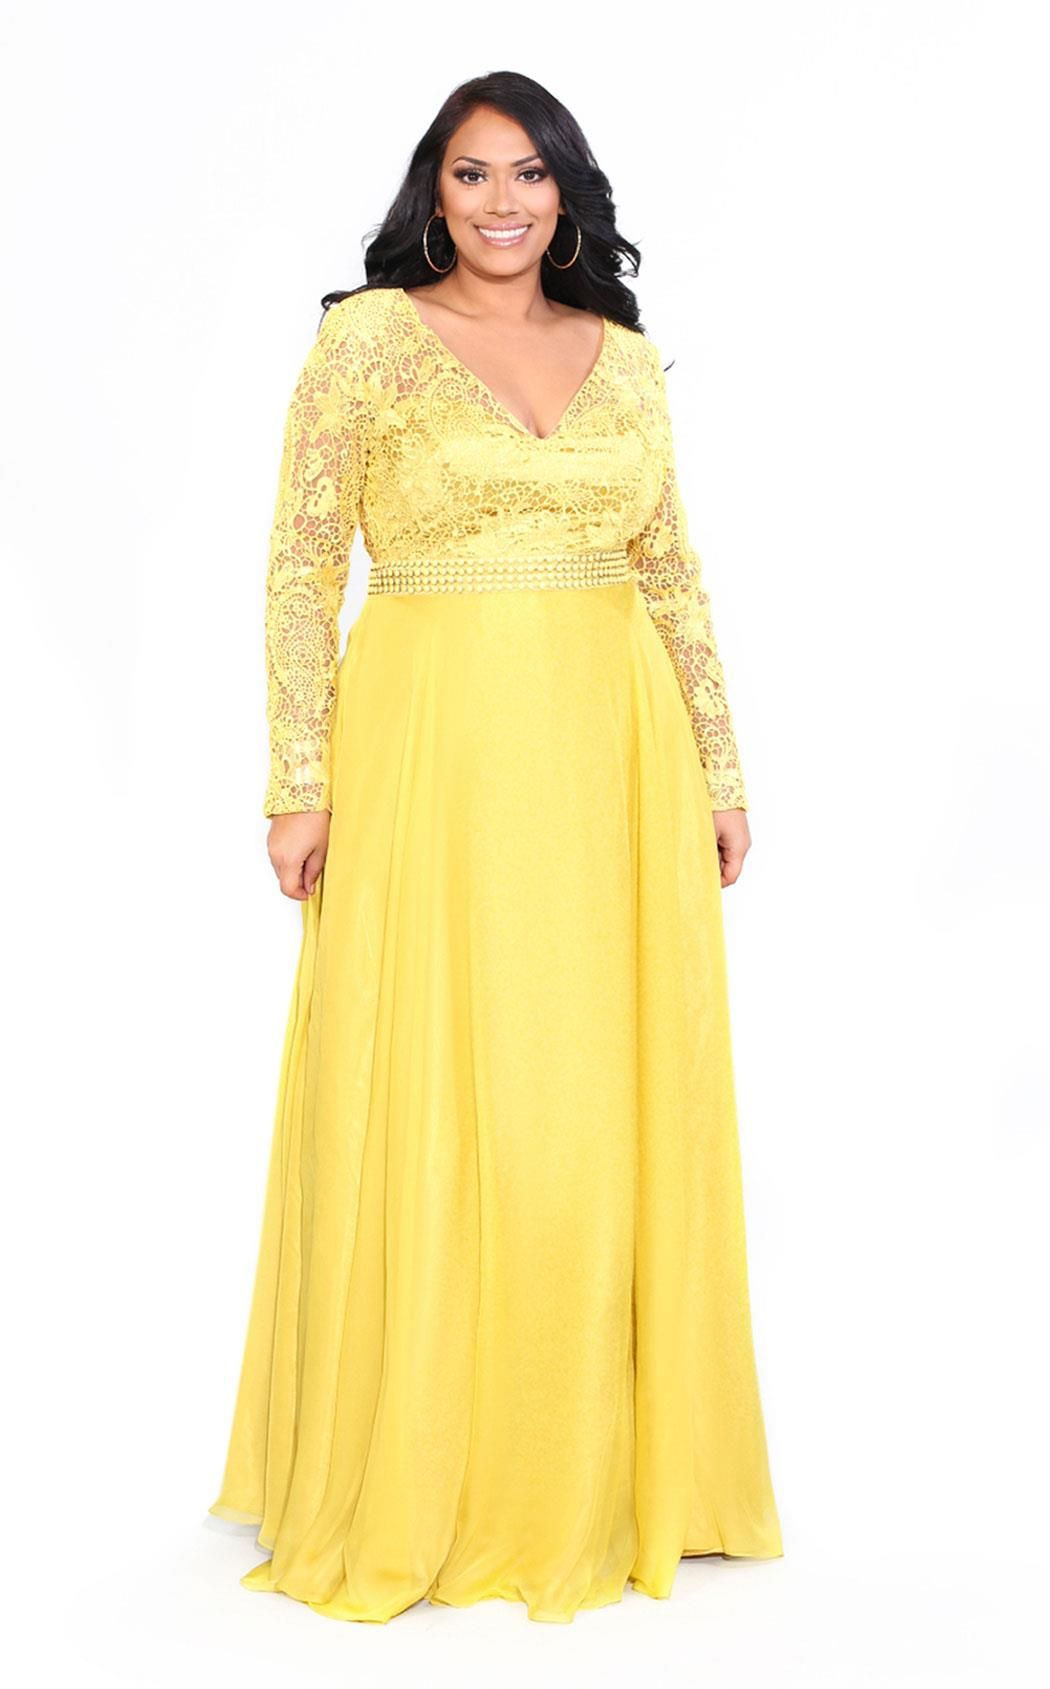 Plus Size Desinger Formal Plus Size Women S Lavish Lace Evening Dress Plus Size Pro Prom Dresses Long With Sleeves Evening Gowns With Sleeves Evening Gowns [ 1689 x 1050 Pixel ]